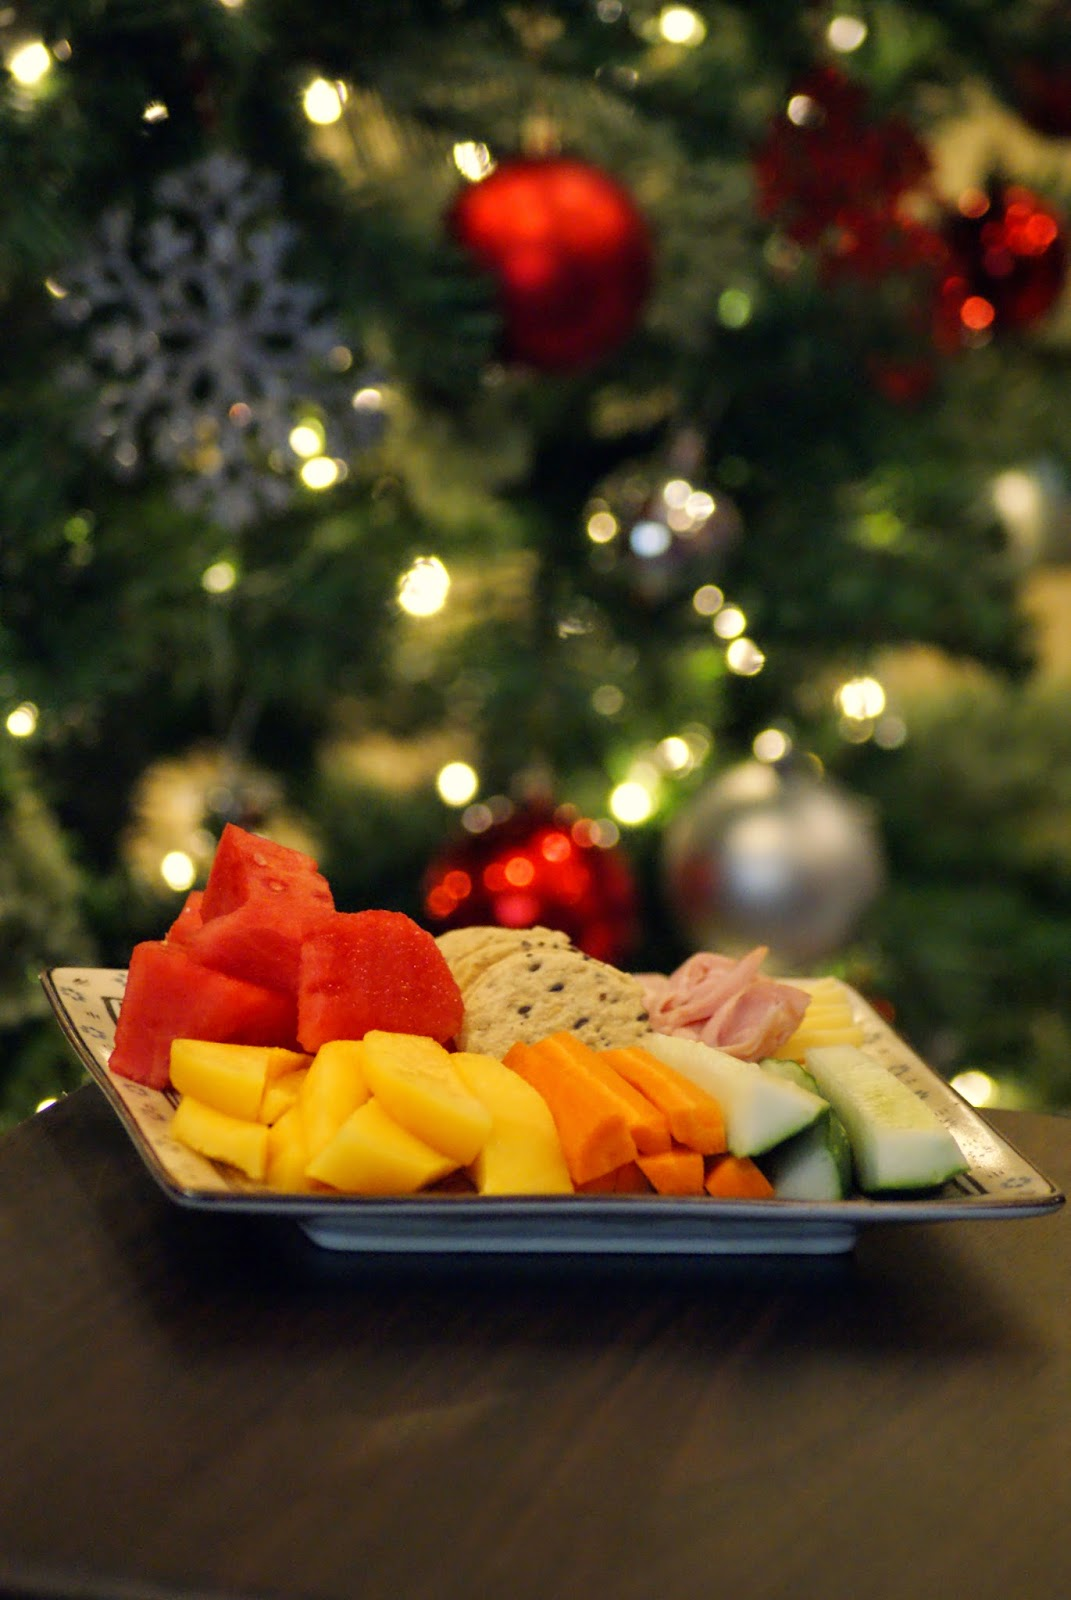 Snacky Picnic Dinner by the Christmas Tree - Christmas Advent Calendar Activities